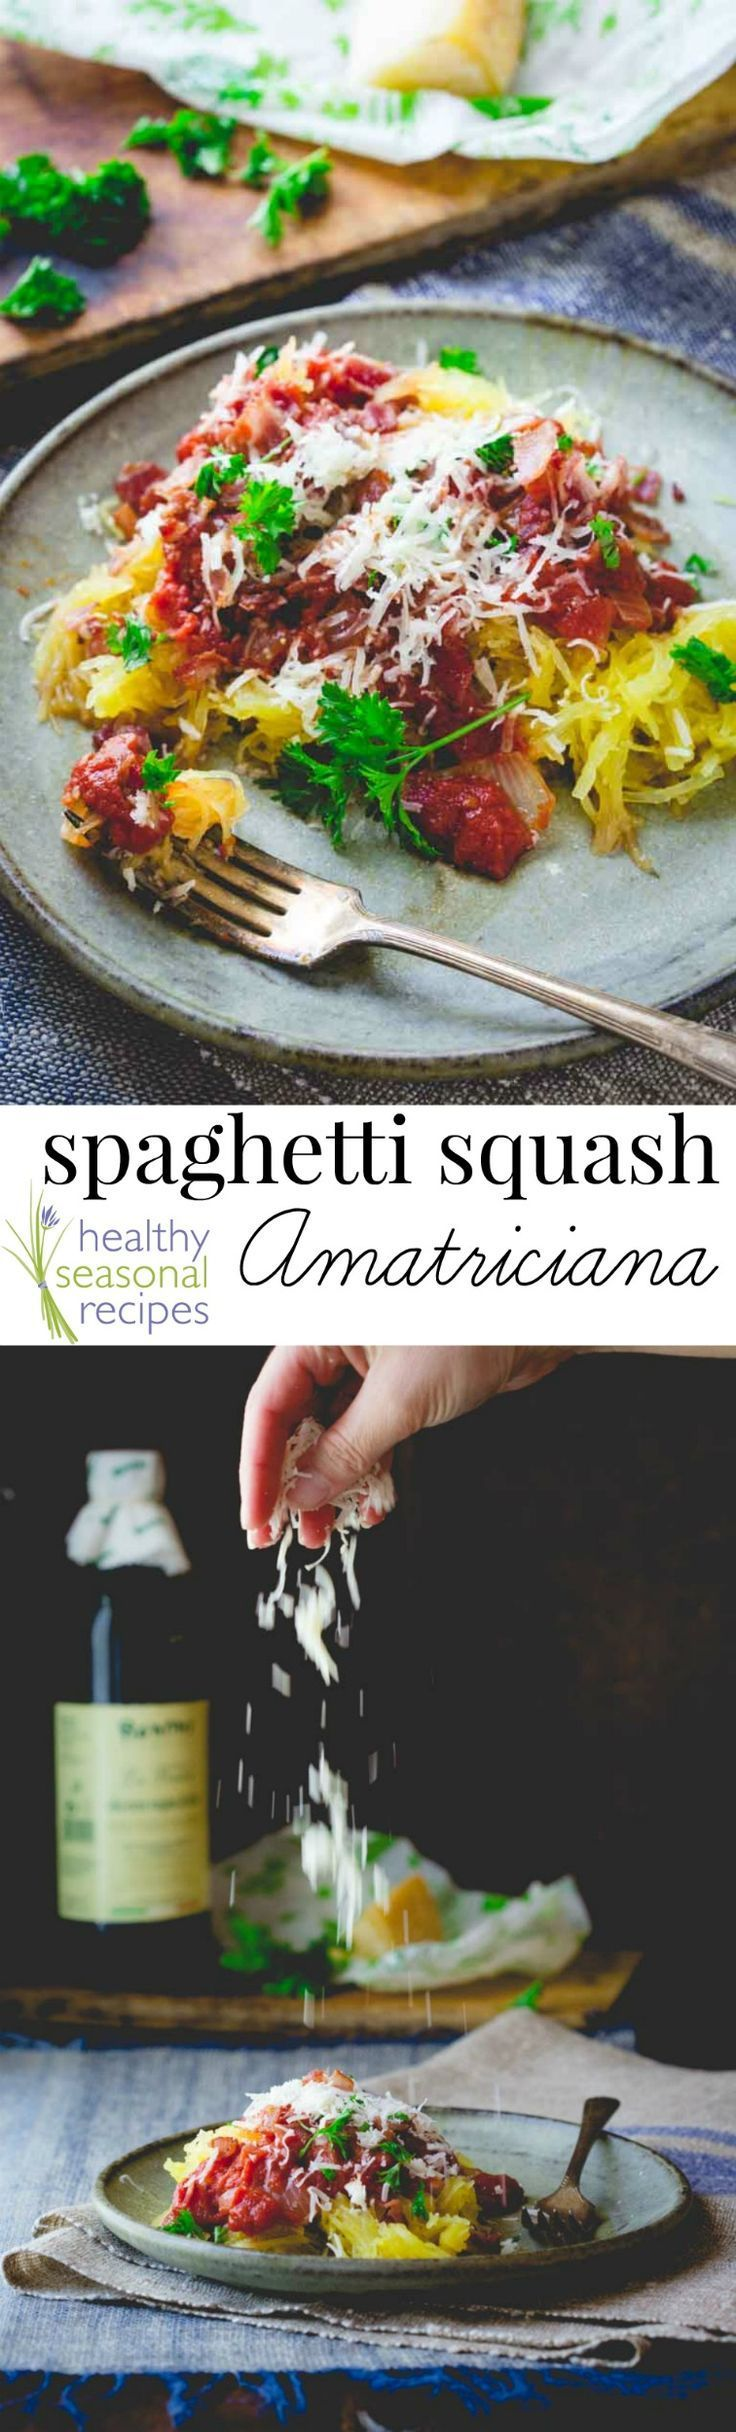 Blog post at Healthy Seasonal Recipes : Here is a 30 minute, primal friendly, low-carb version of Spaghetti Amatriciana, made with spaghetti squash instead of pasta and bacon inste[..]